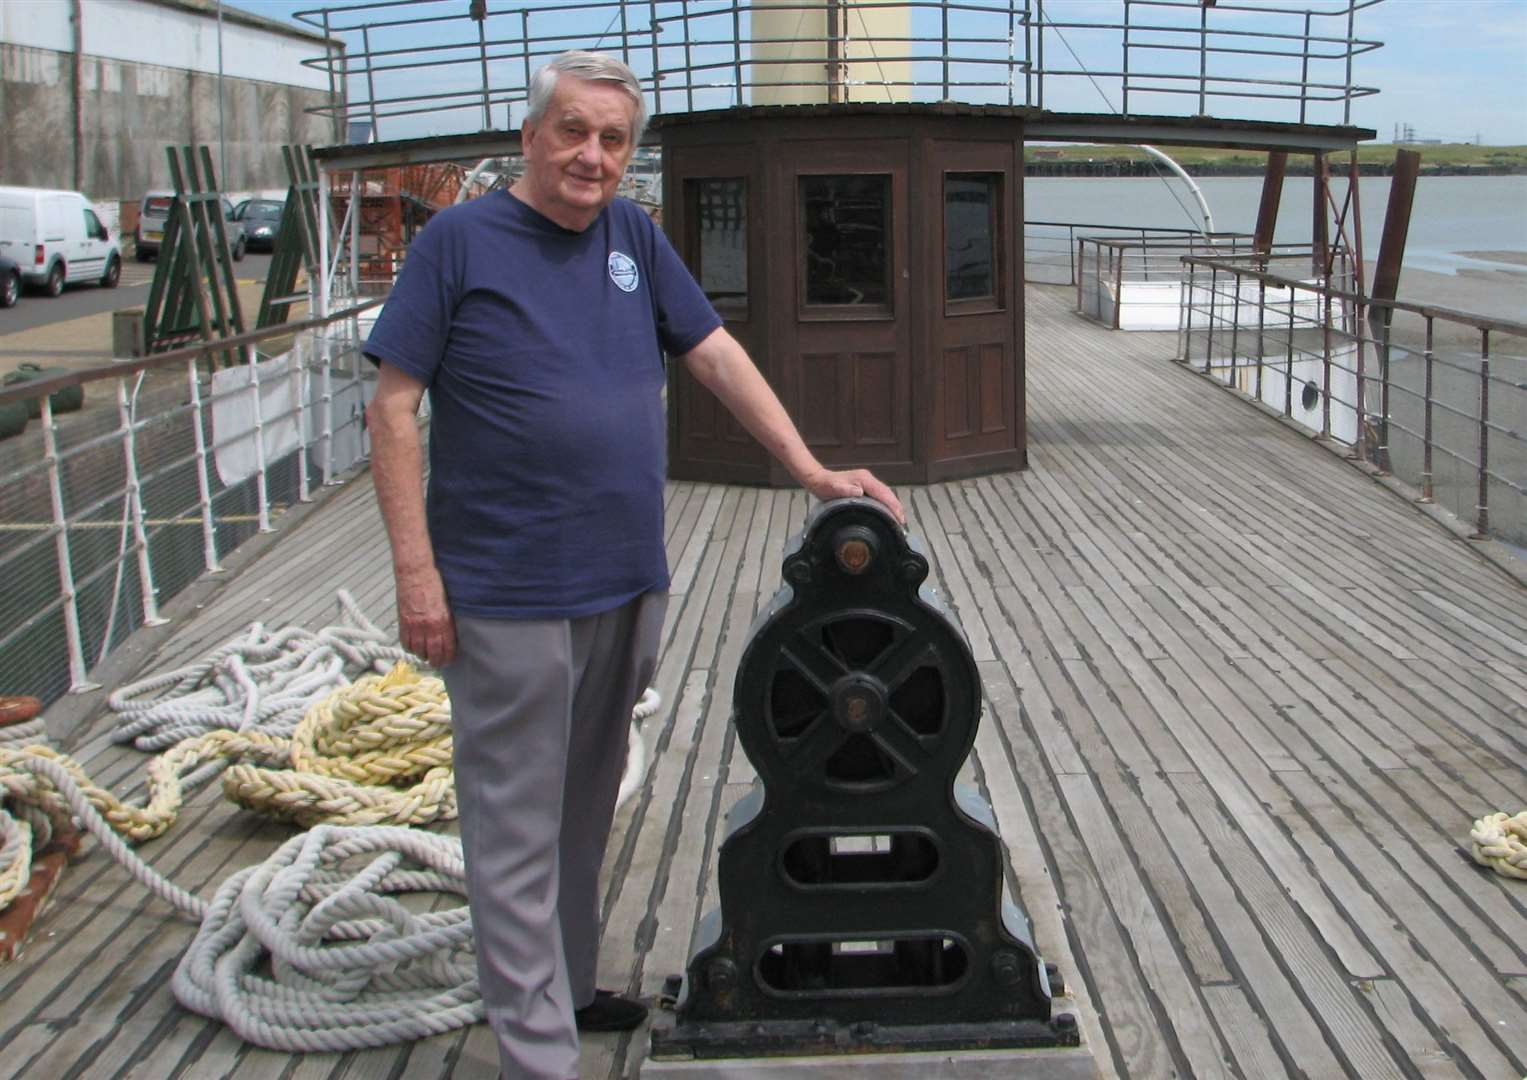 Brian Goodhew on board the Medway Queen